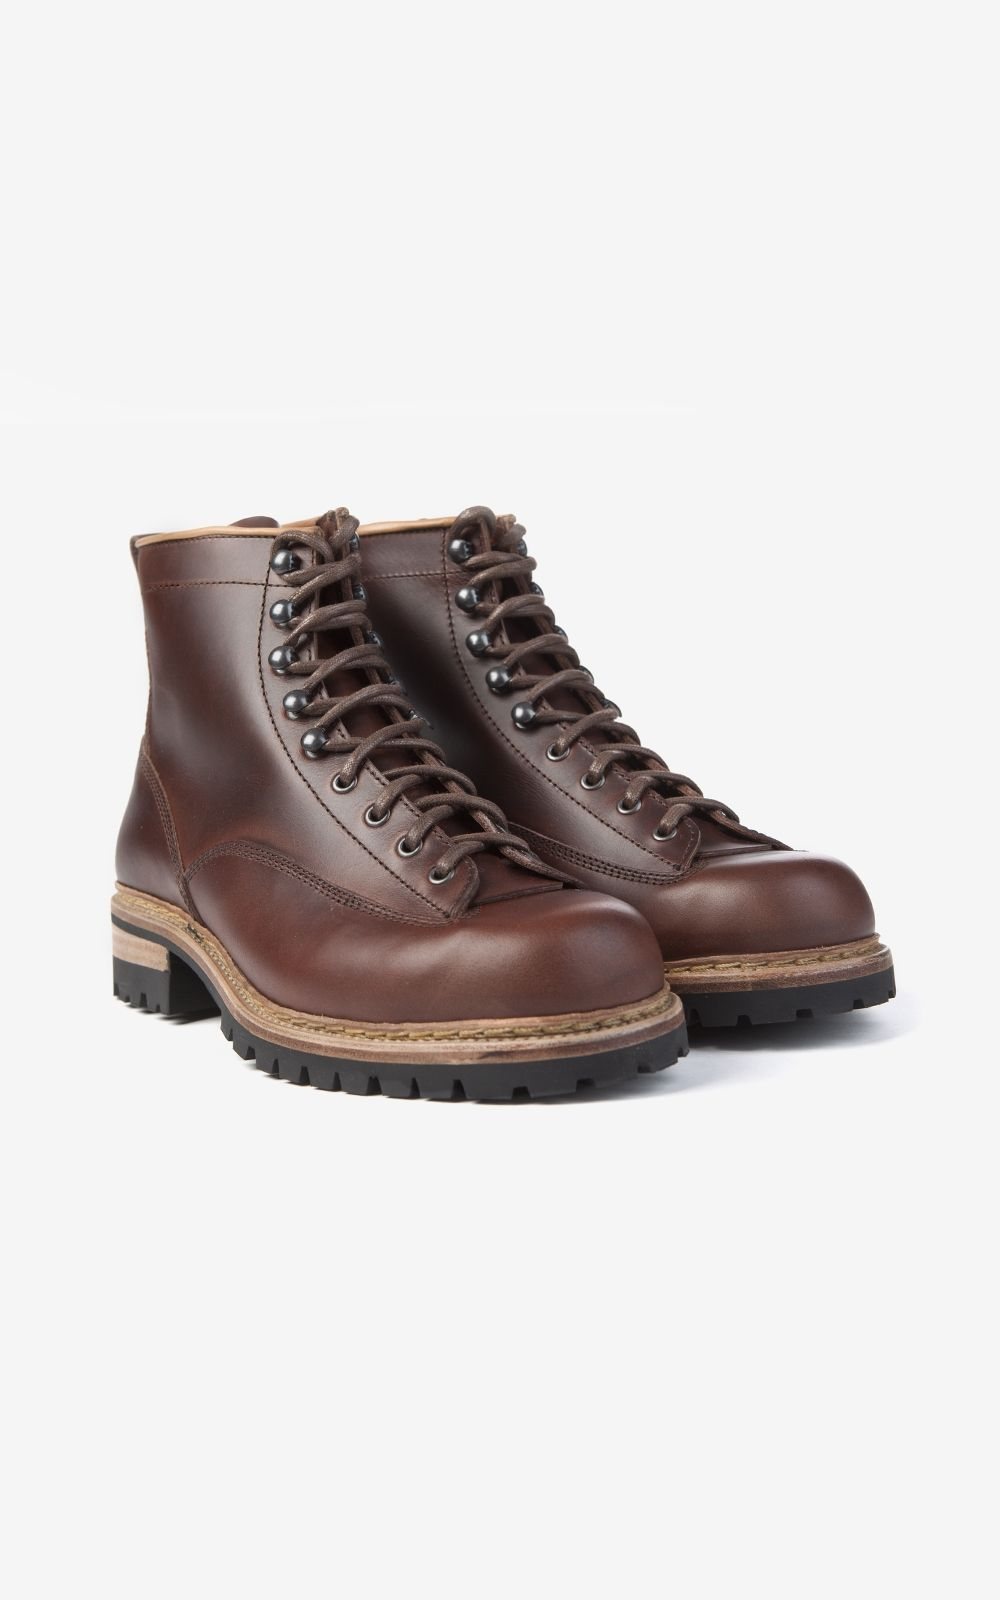 Pike Brothers 1946 Mountaineer Boots Bourbon Brown